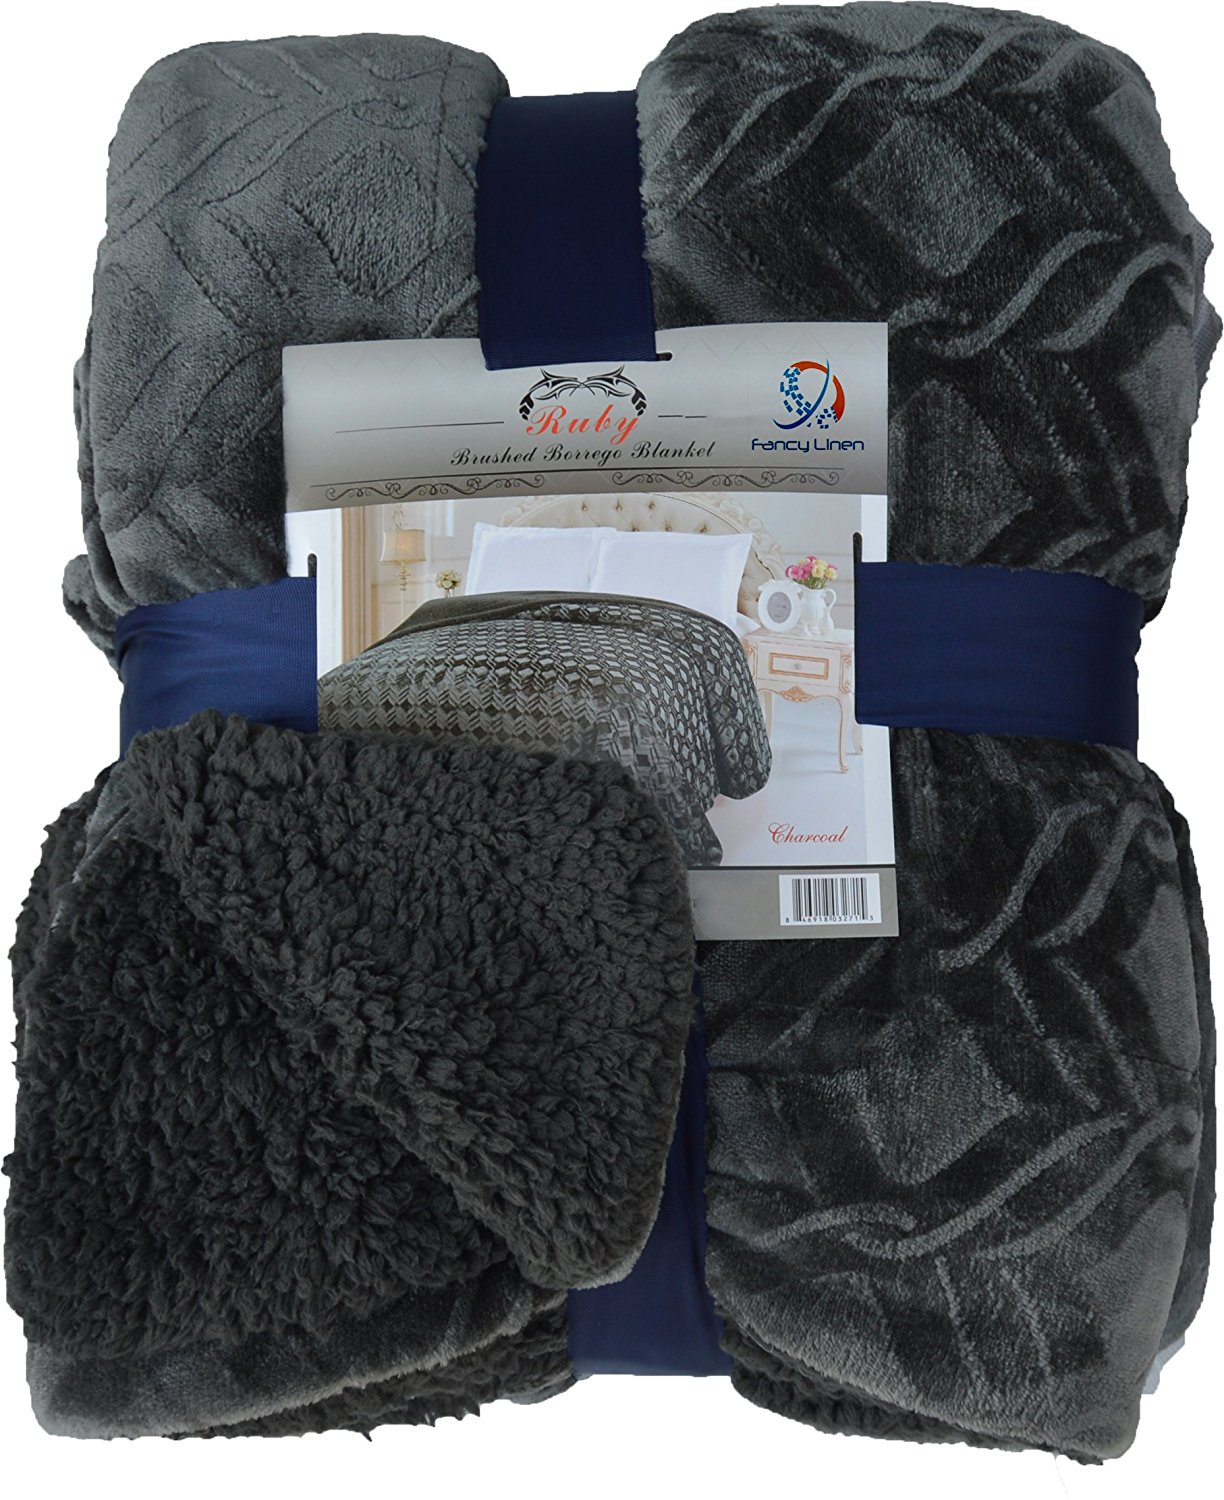 Fancy Collection Queen/king Size Embossed Blanket Sumptuously Soft Plush Sollid Chrcoal with Sherpa Revirsable Winter Blankets Bedspread Super Soft New (Queen/King, Dark Grey/Charcoal)